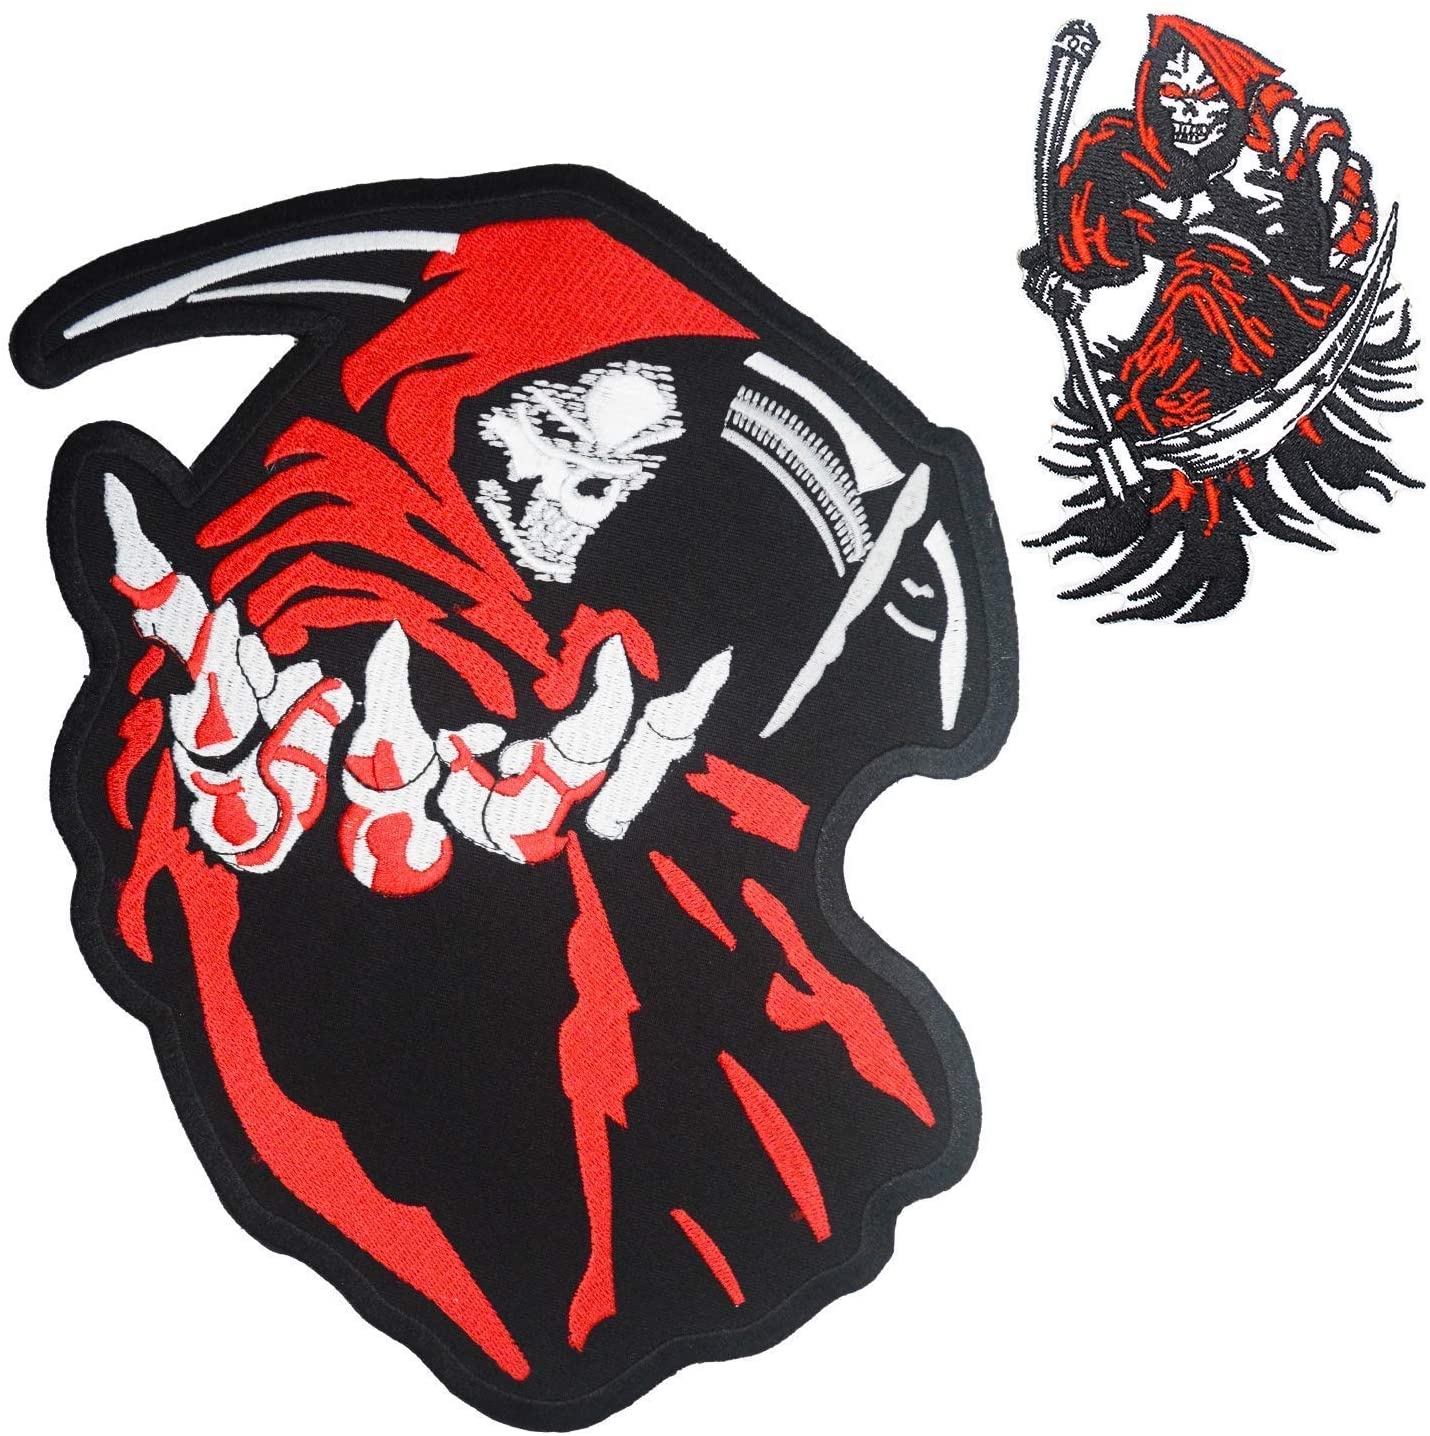 Grim Reaper Skull Red Hood Small & Large Embroidered Back Patches for Motorcycle Jacket & Biker Vest (Set of 2)